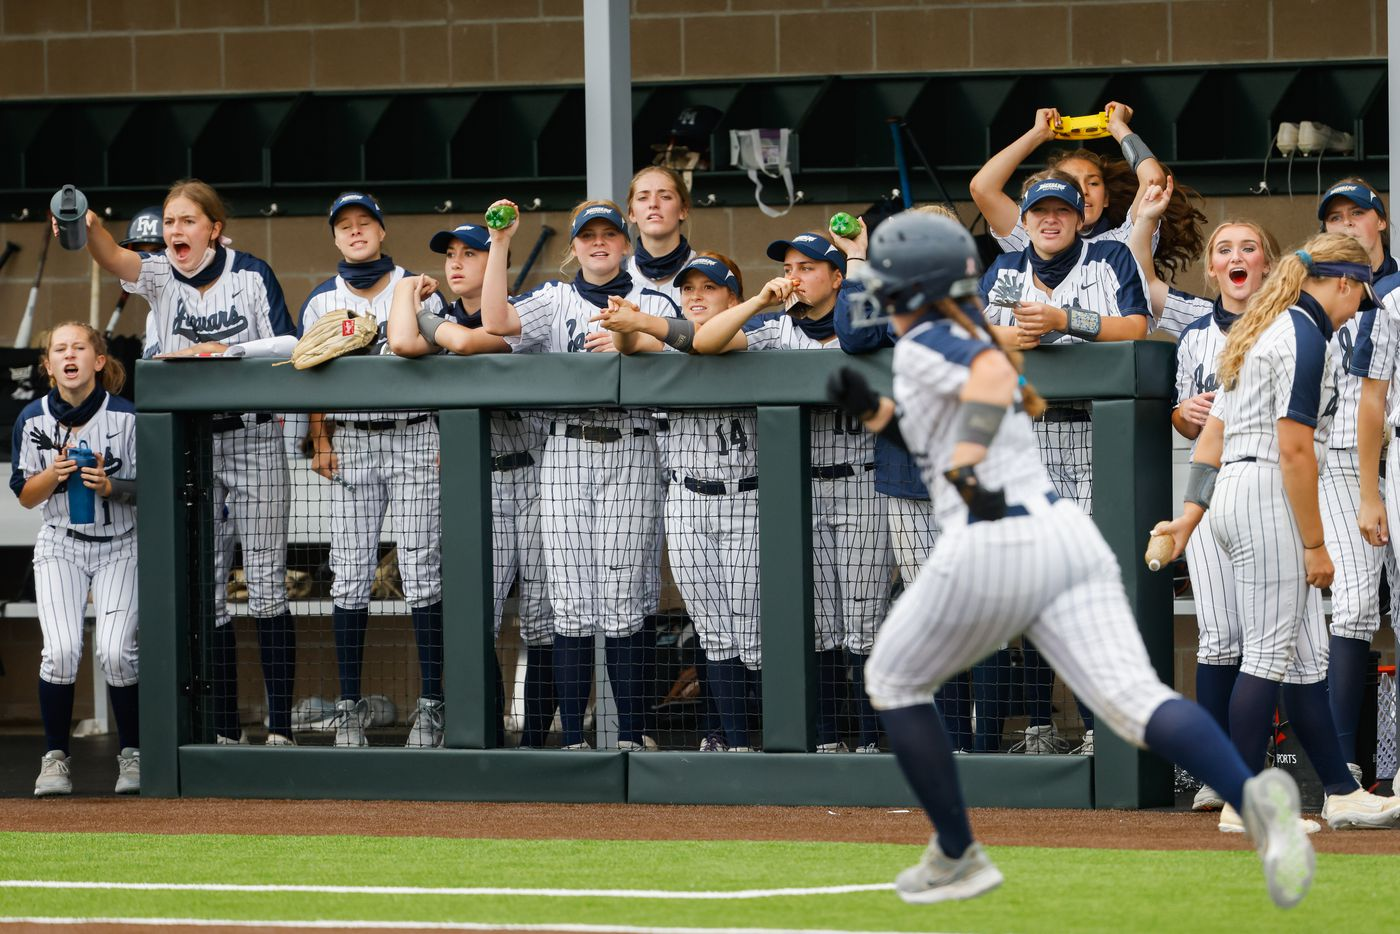 Flower Mound players cheer on teammate Katie Cantrell (20) during the fifth inning of a softball Class 6A bi-district playoff game against McKinney Boyd on Friday, April 30, 2021, in Denton. (Juan Figueroa/The Dallas Morning News)